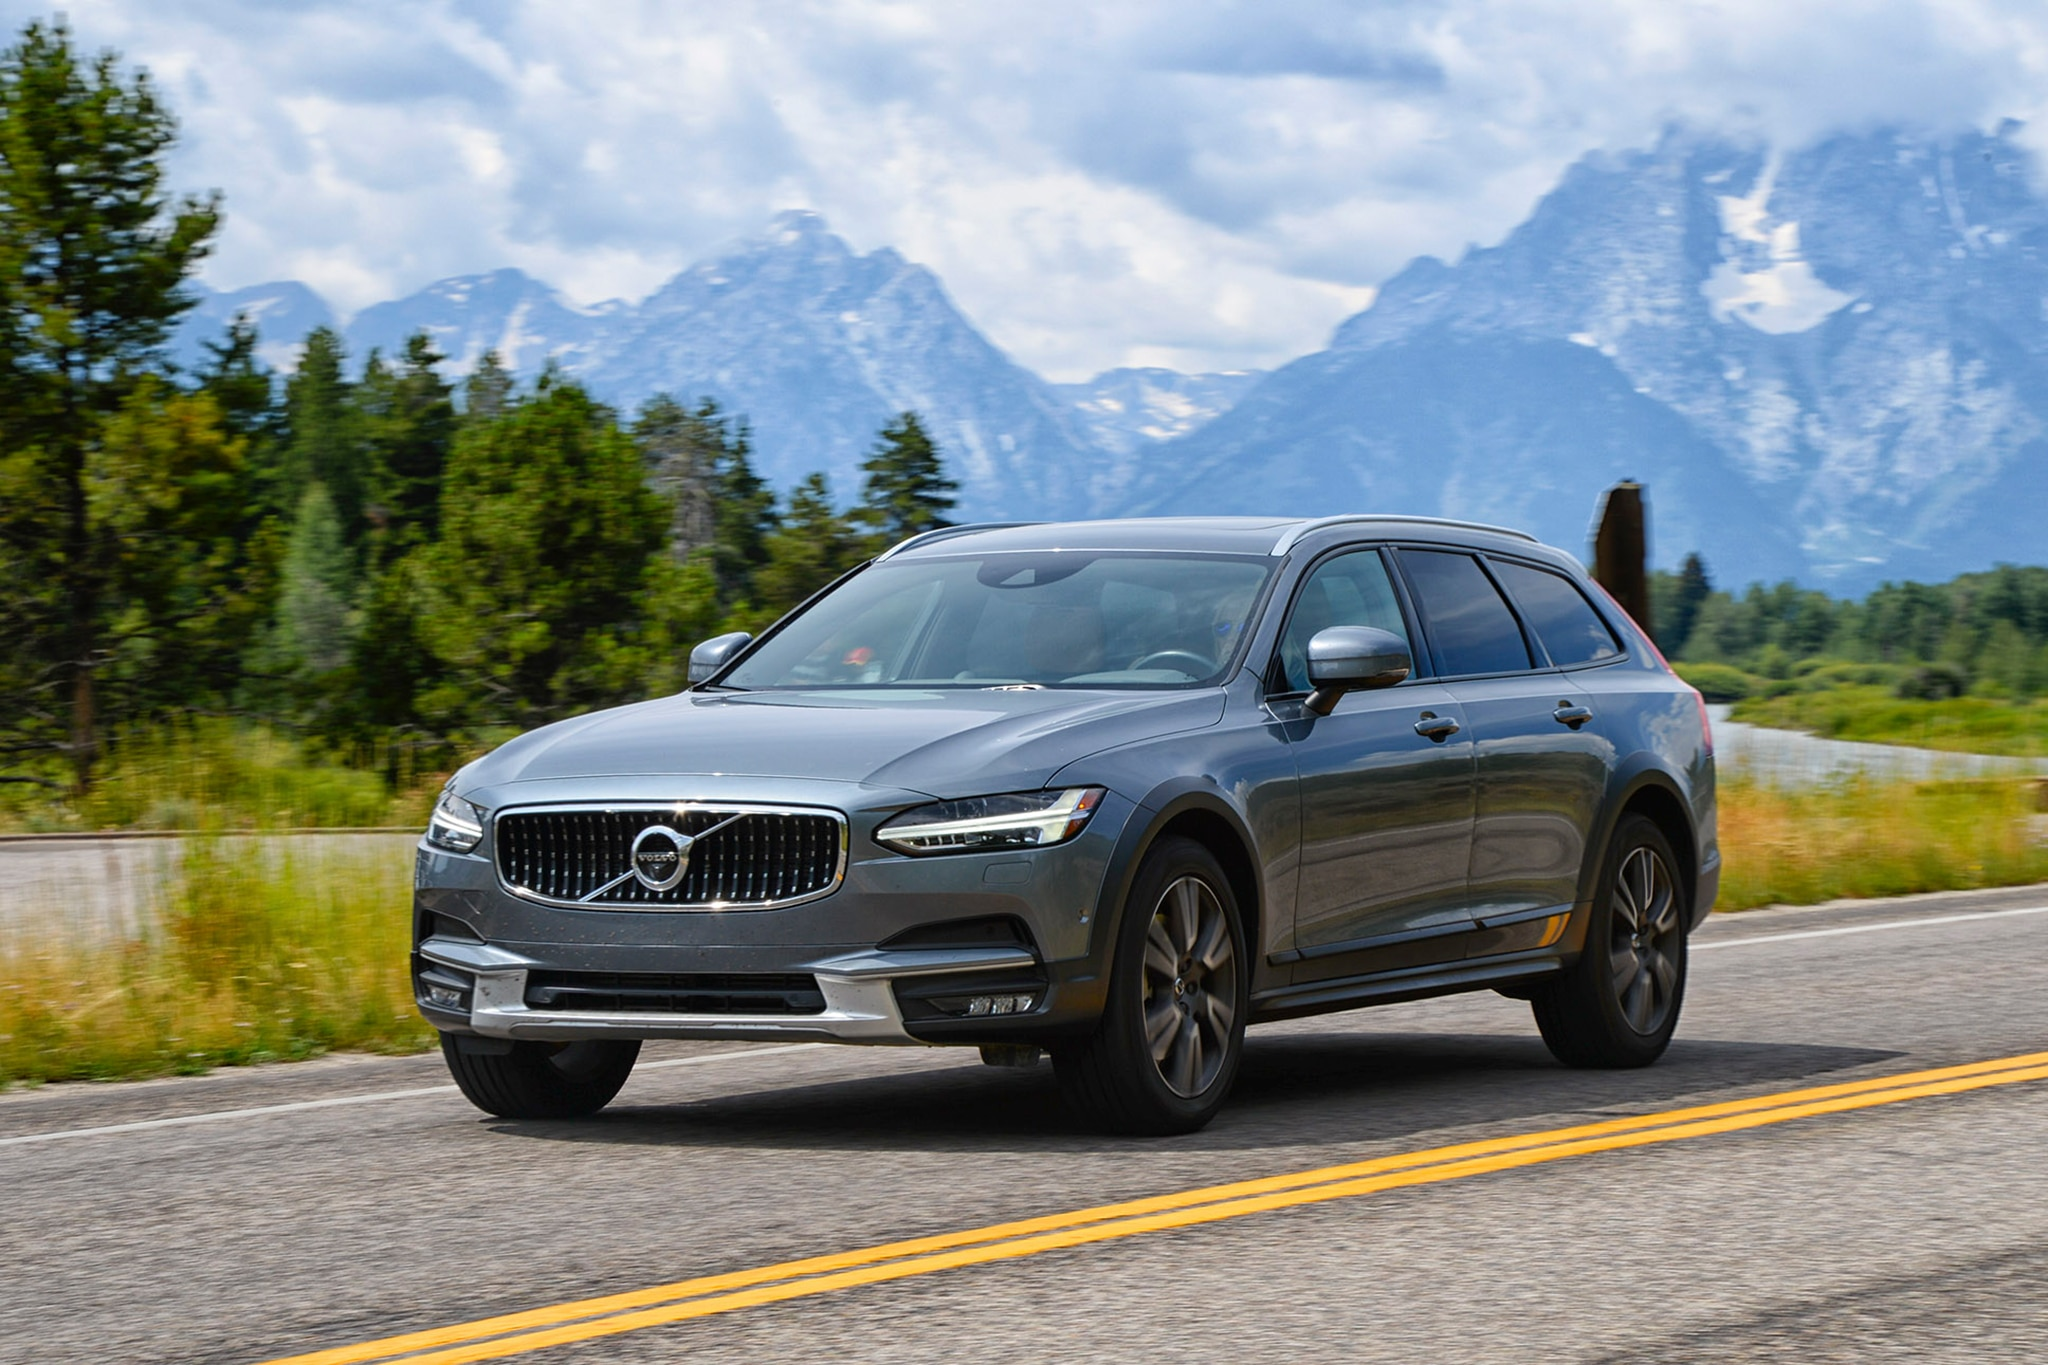 2017 Volvo V90 Cross Country Front Three Quarter In Motion 02